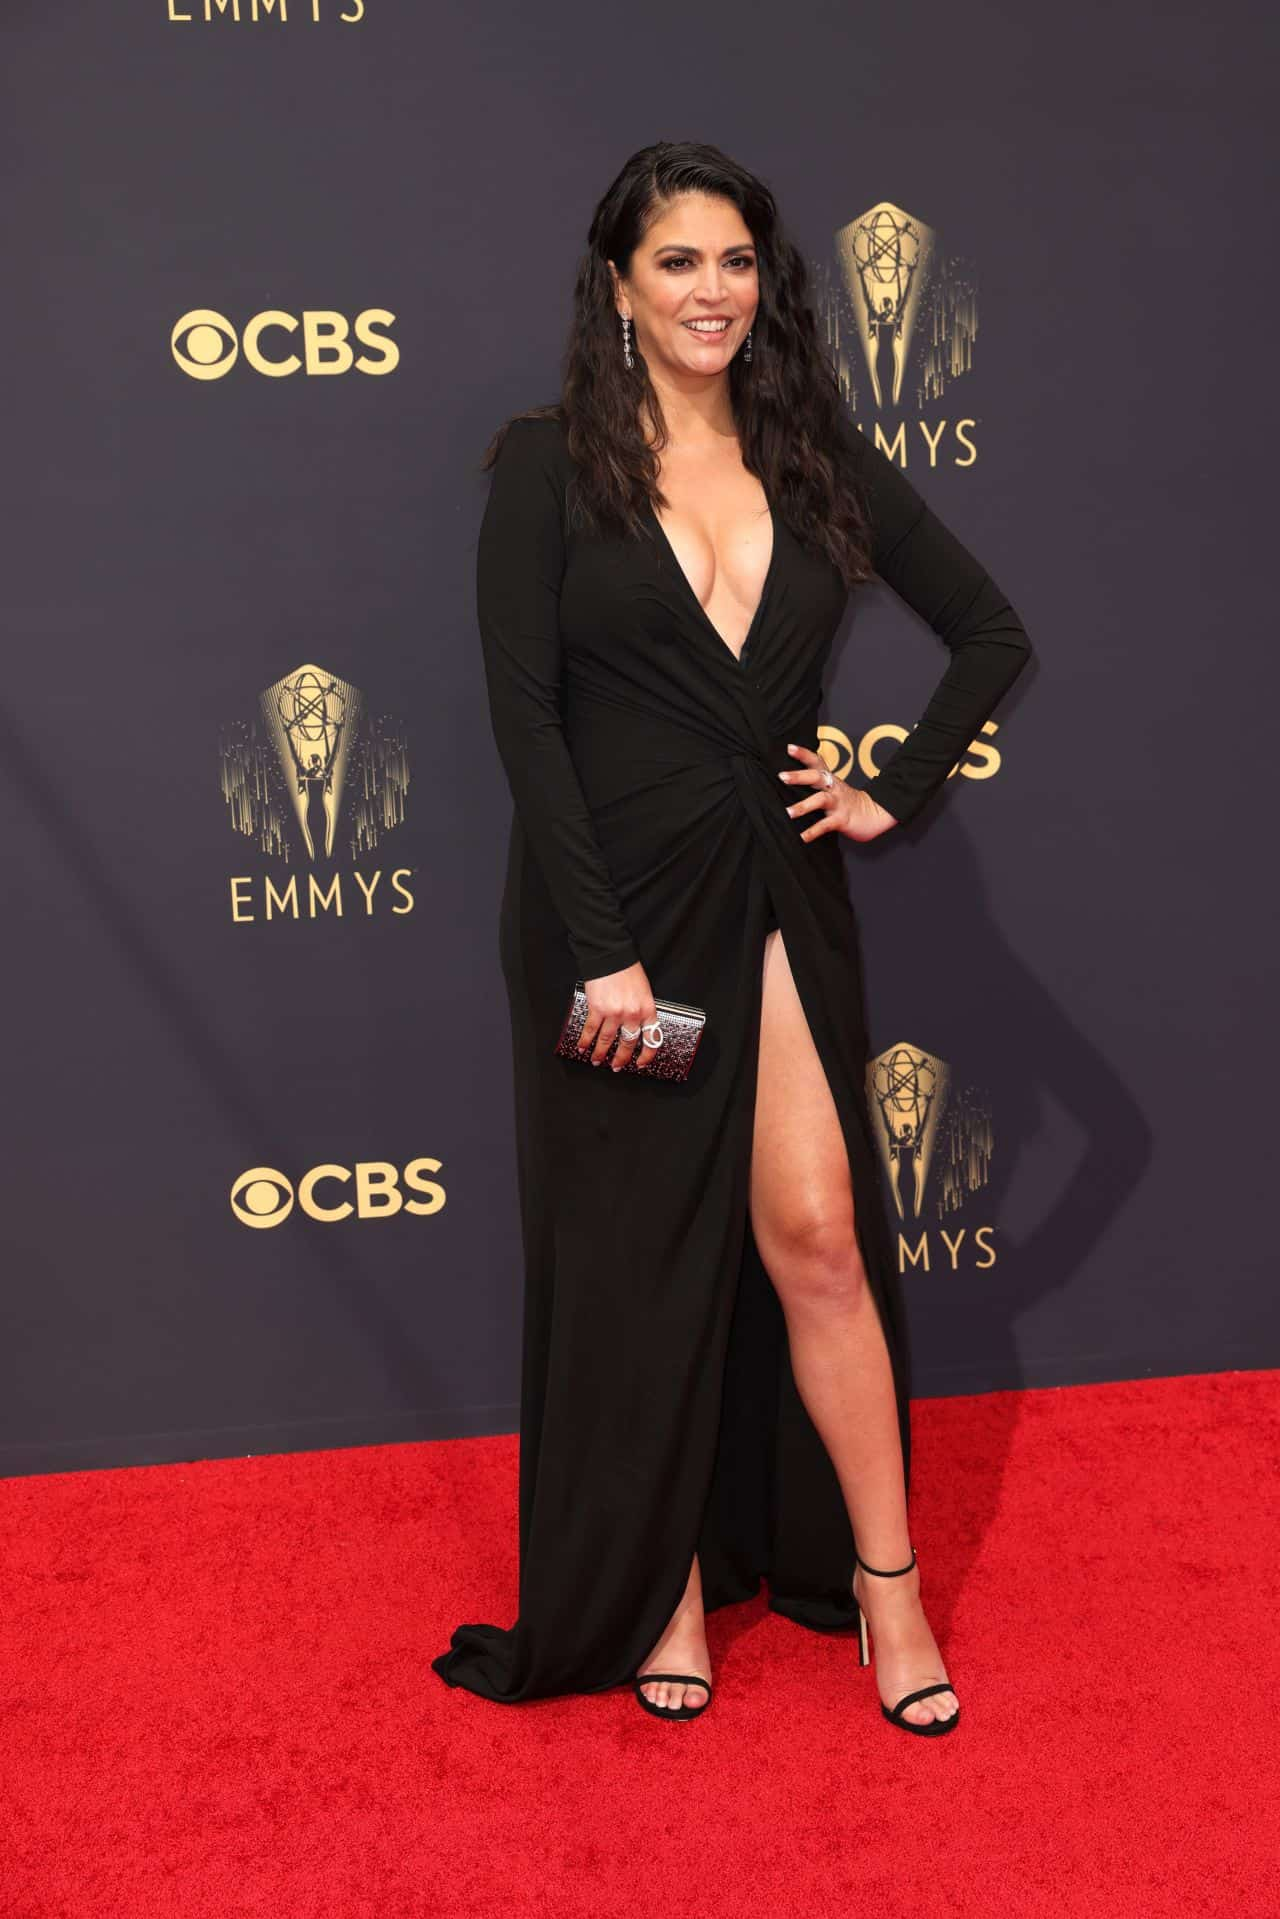 Cecily Strong Attends the 73rd Primetime Emmy Awards at L.A. LIVE in LA